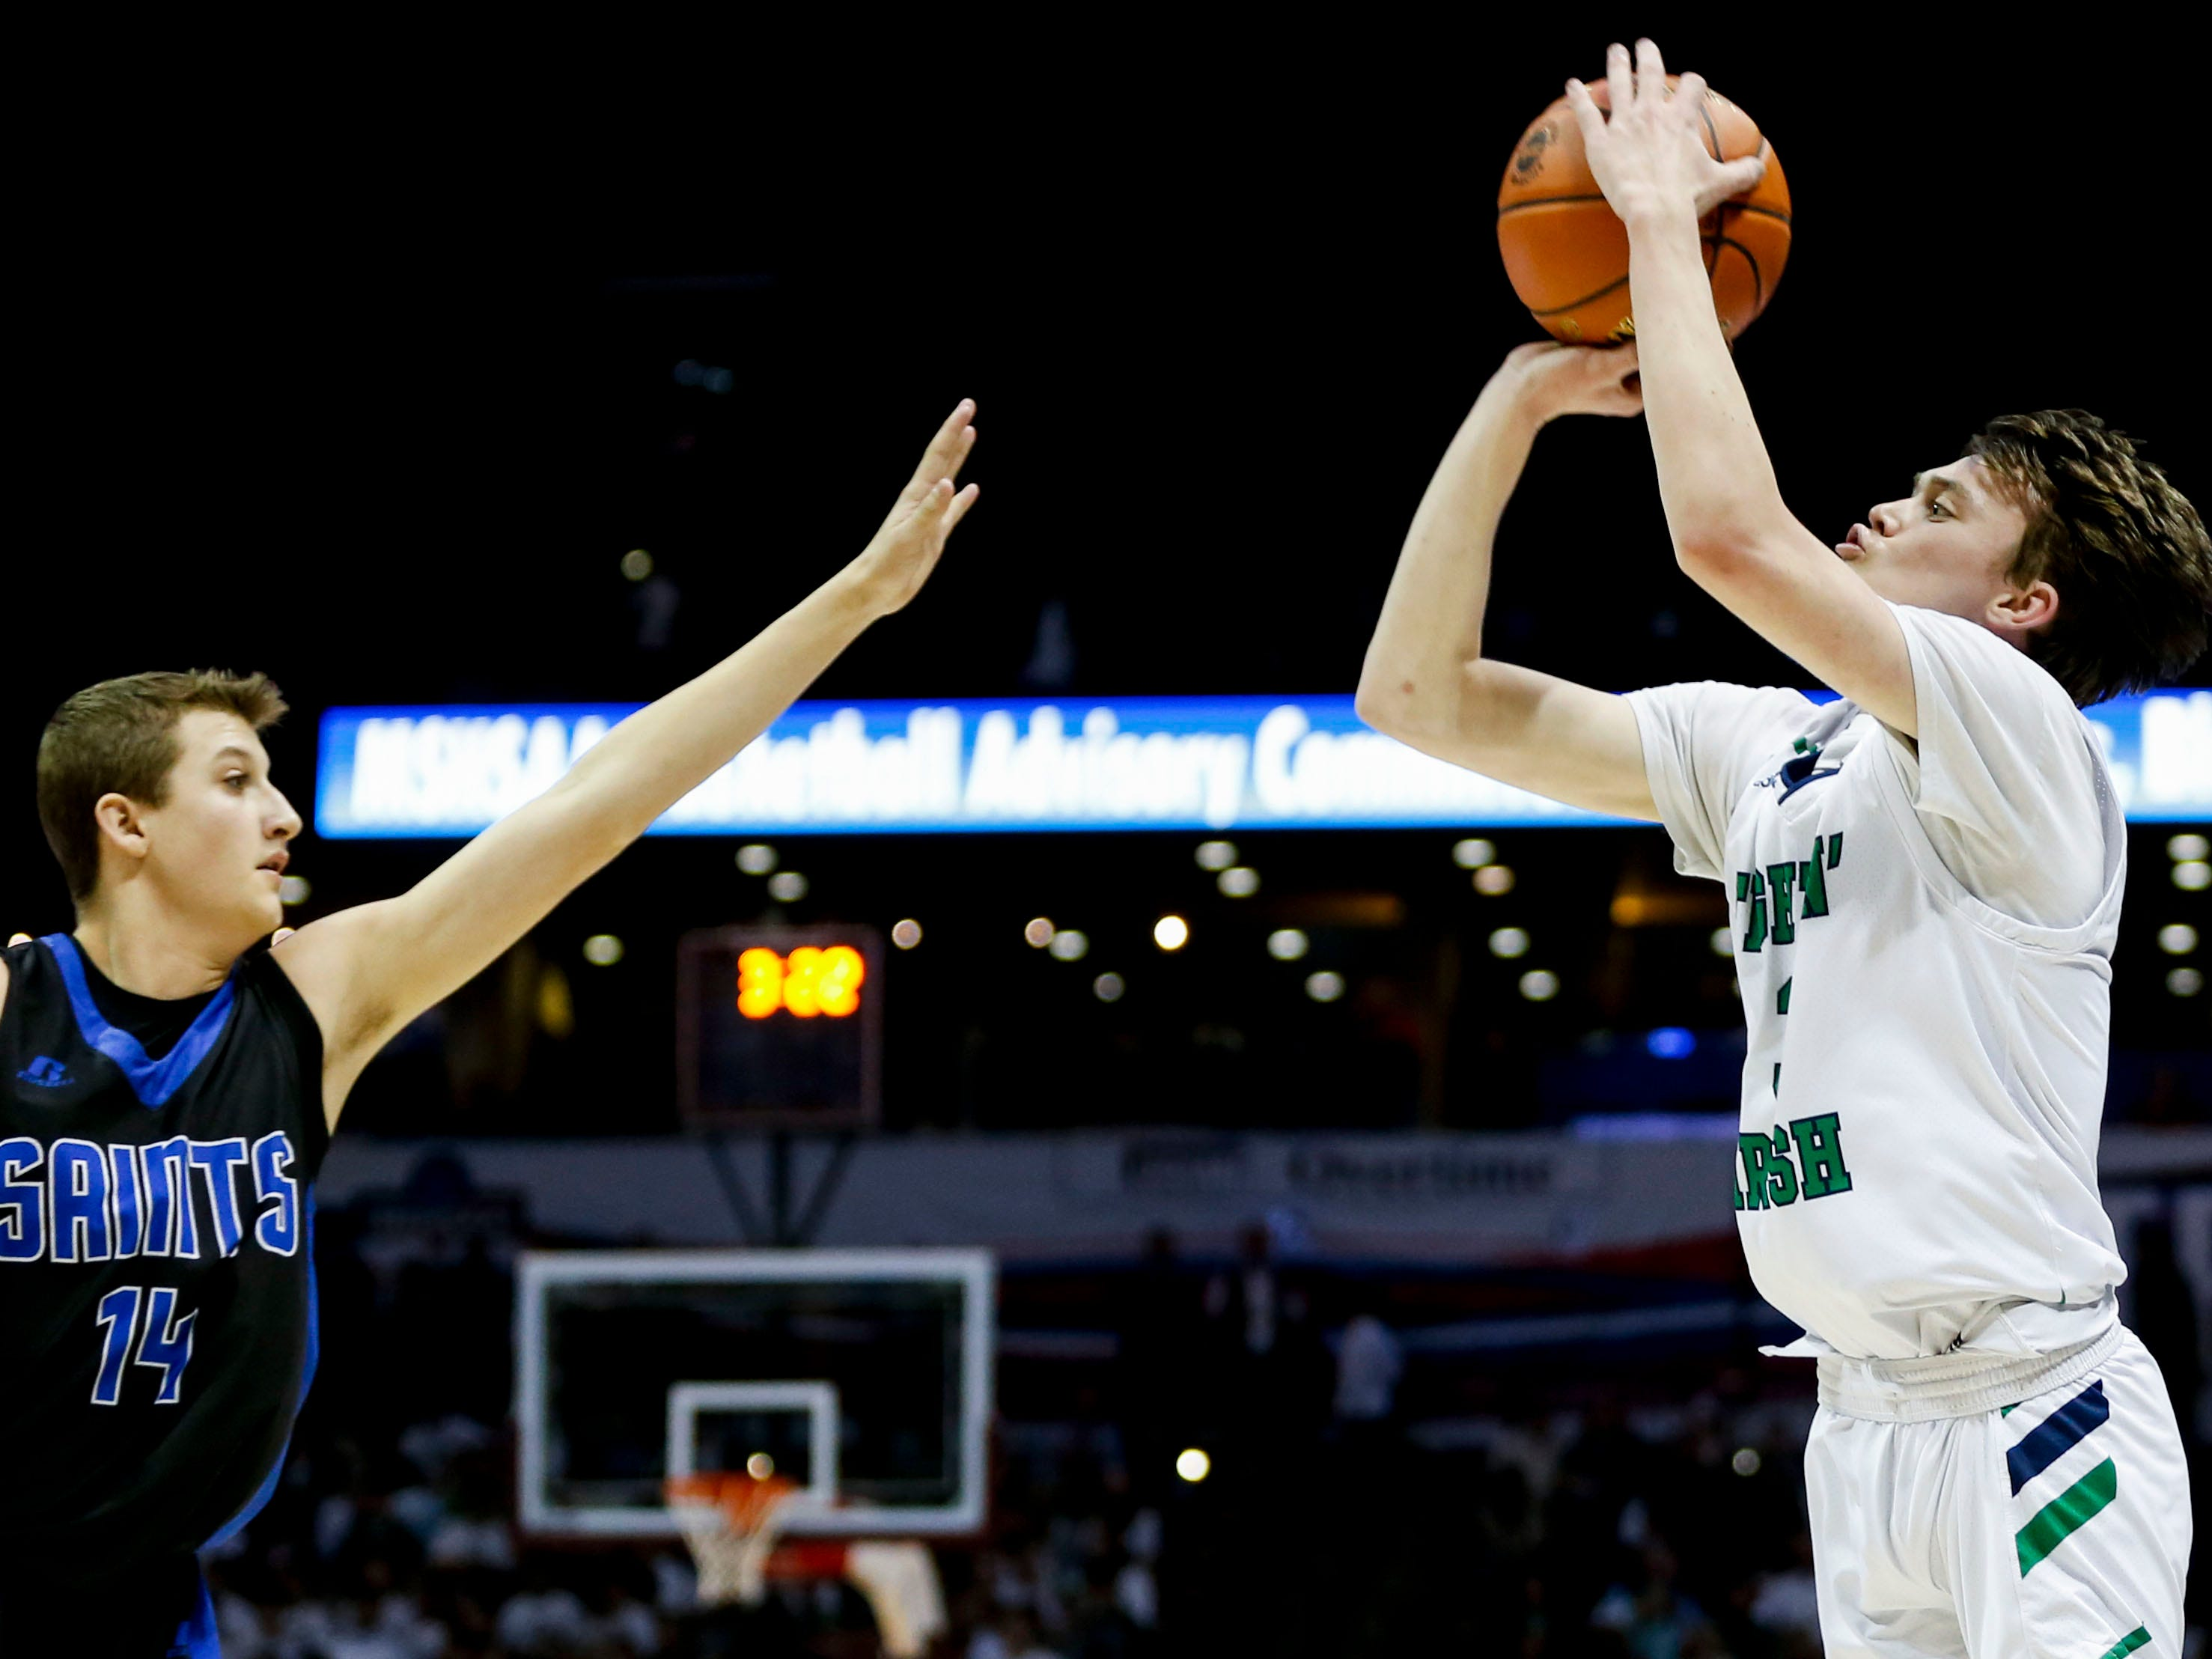 Springfield Catholic's Jake Branham shoots a field goal over St. Paul Lutheran's Justin Griffith in the semifinal round of Class 3 state basketball at JQH Arena on Thursday, March 7, 2019.